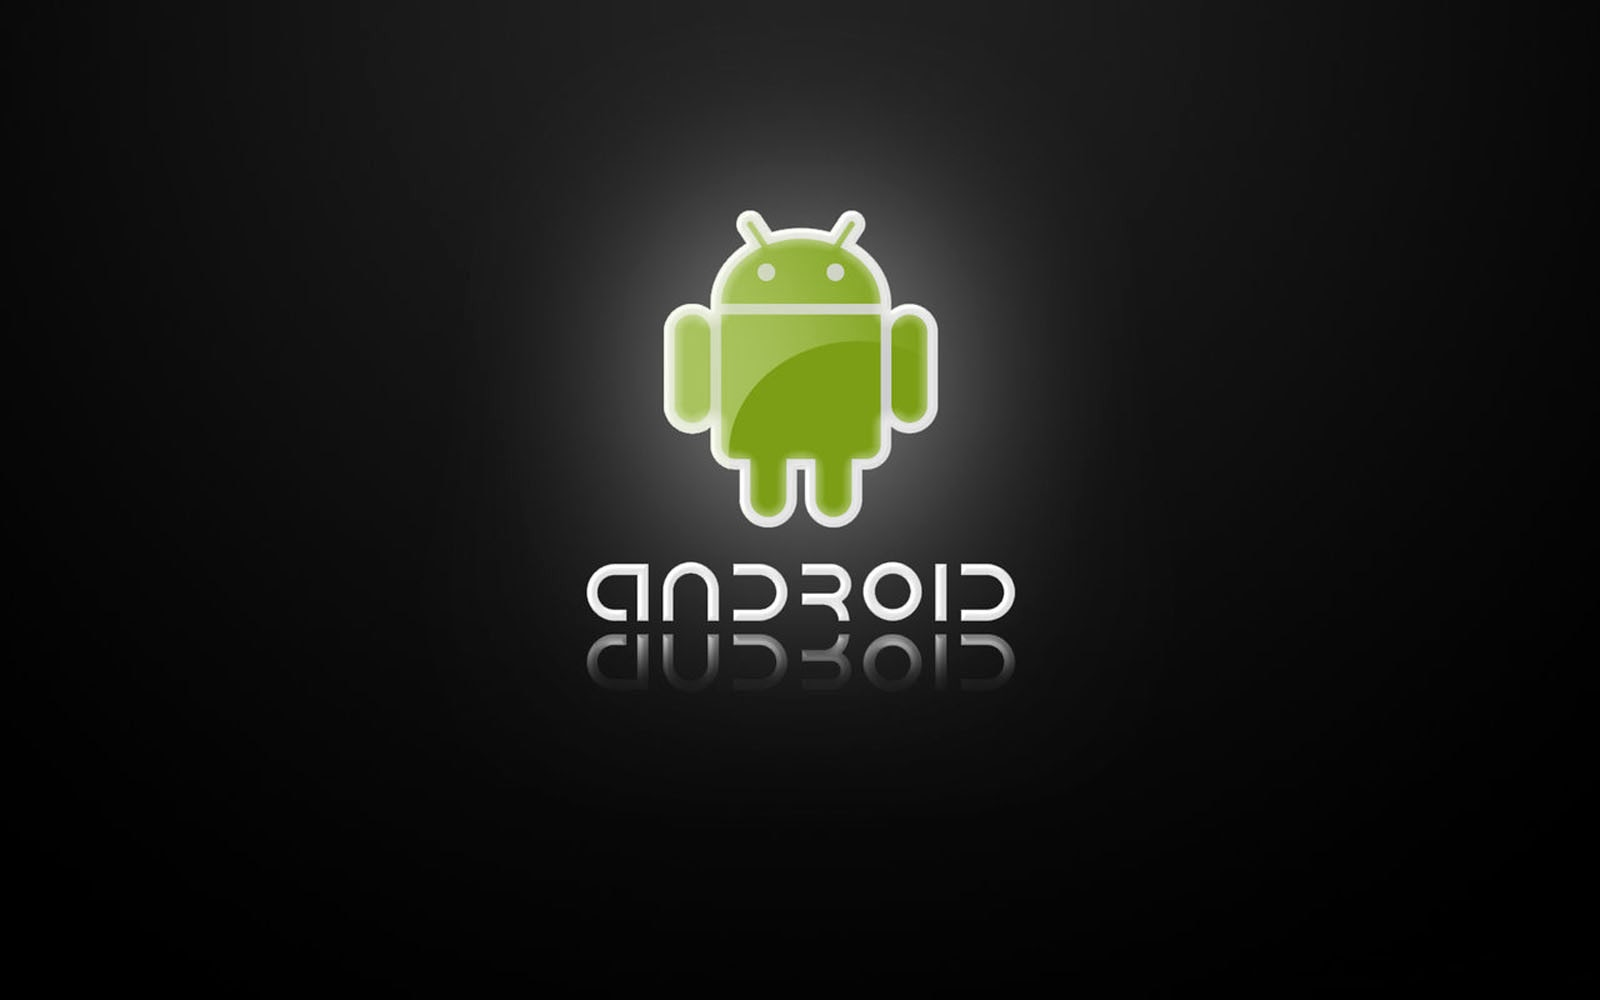 Google Android Wallpaper: Wallpapers: Android Wallpapers